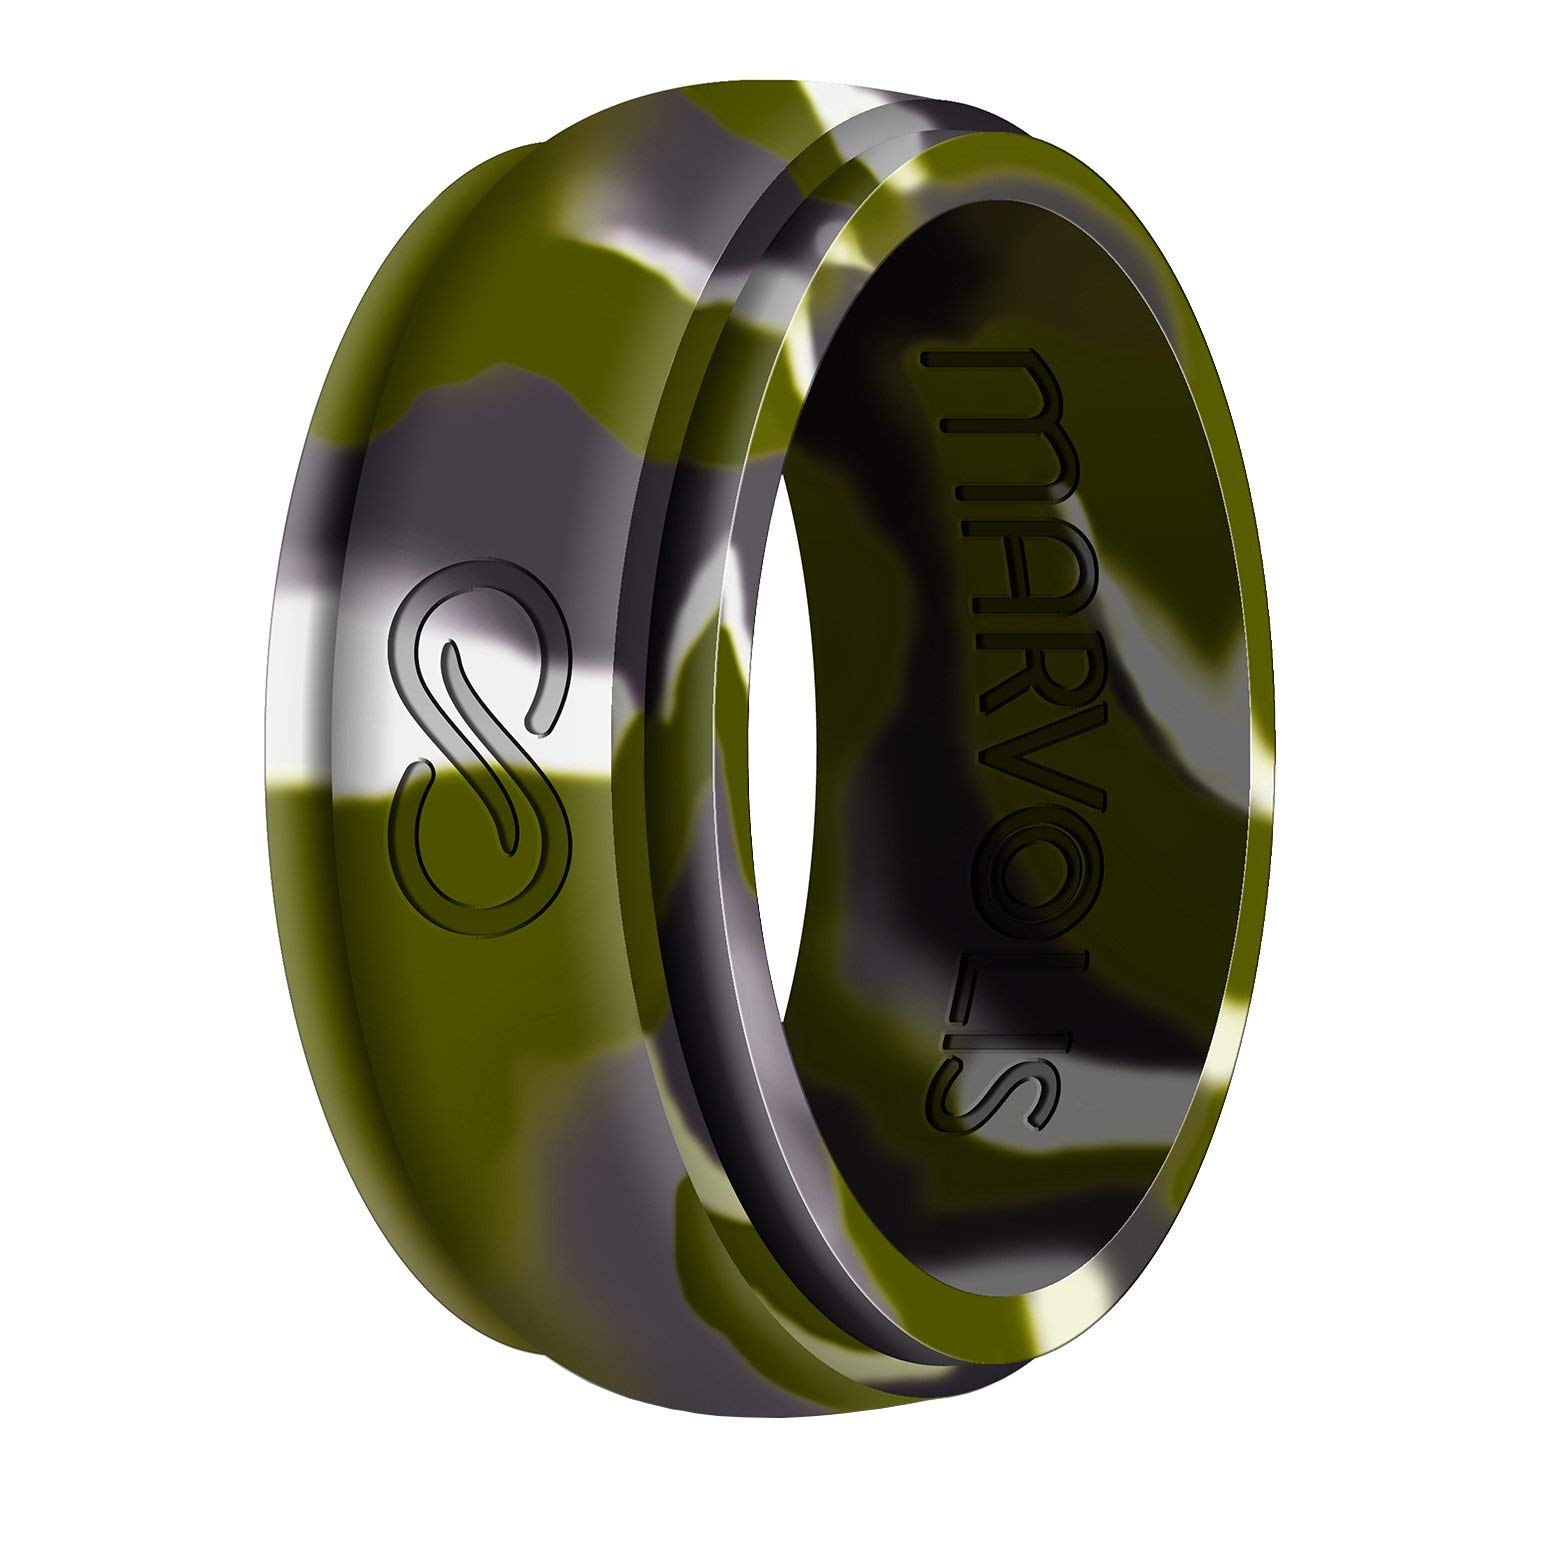 Marvolis Premium Men Silicone Ring-Fashionable, Comfortable, Hypoallergenic Medical Grade Silicone Band for Active Men|100 Year Unconditional Manufacturer Warranty (13, Infinity Camo Green)